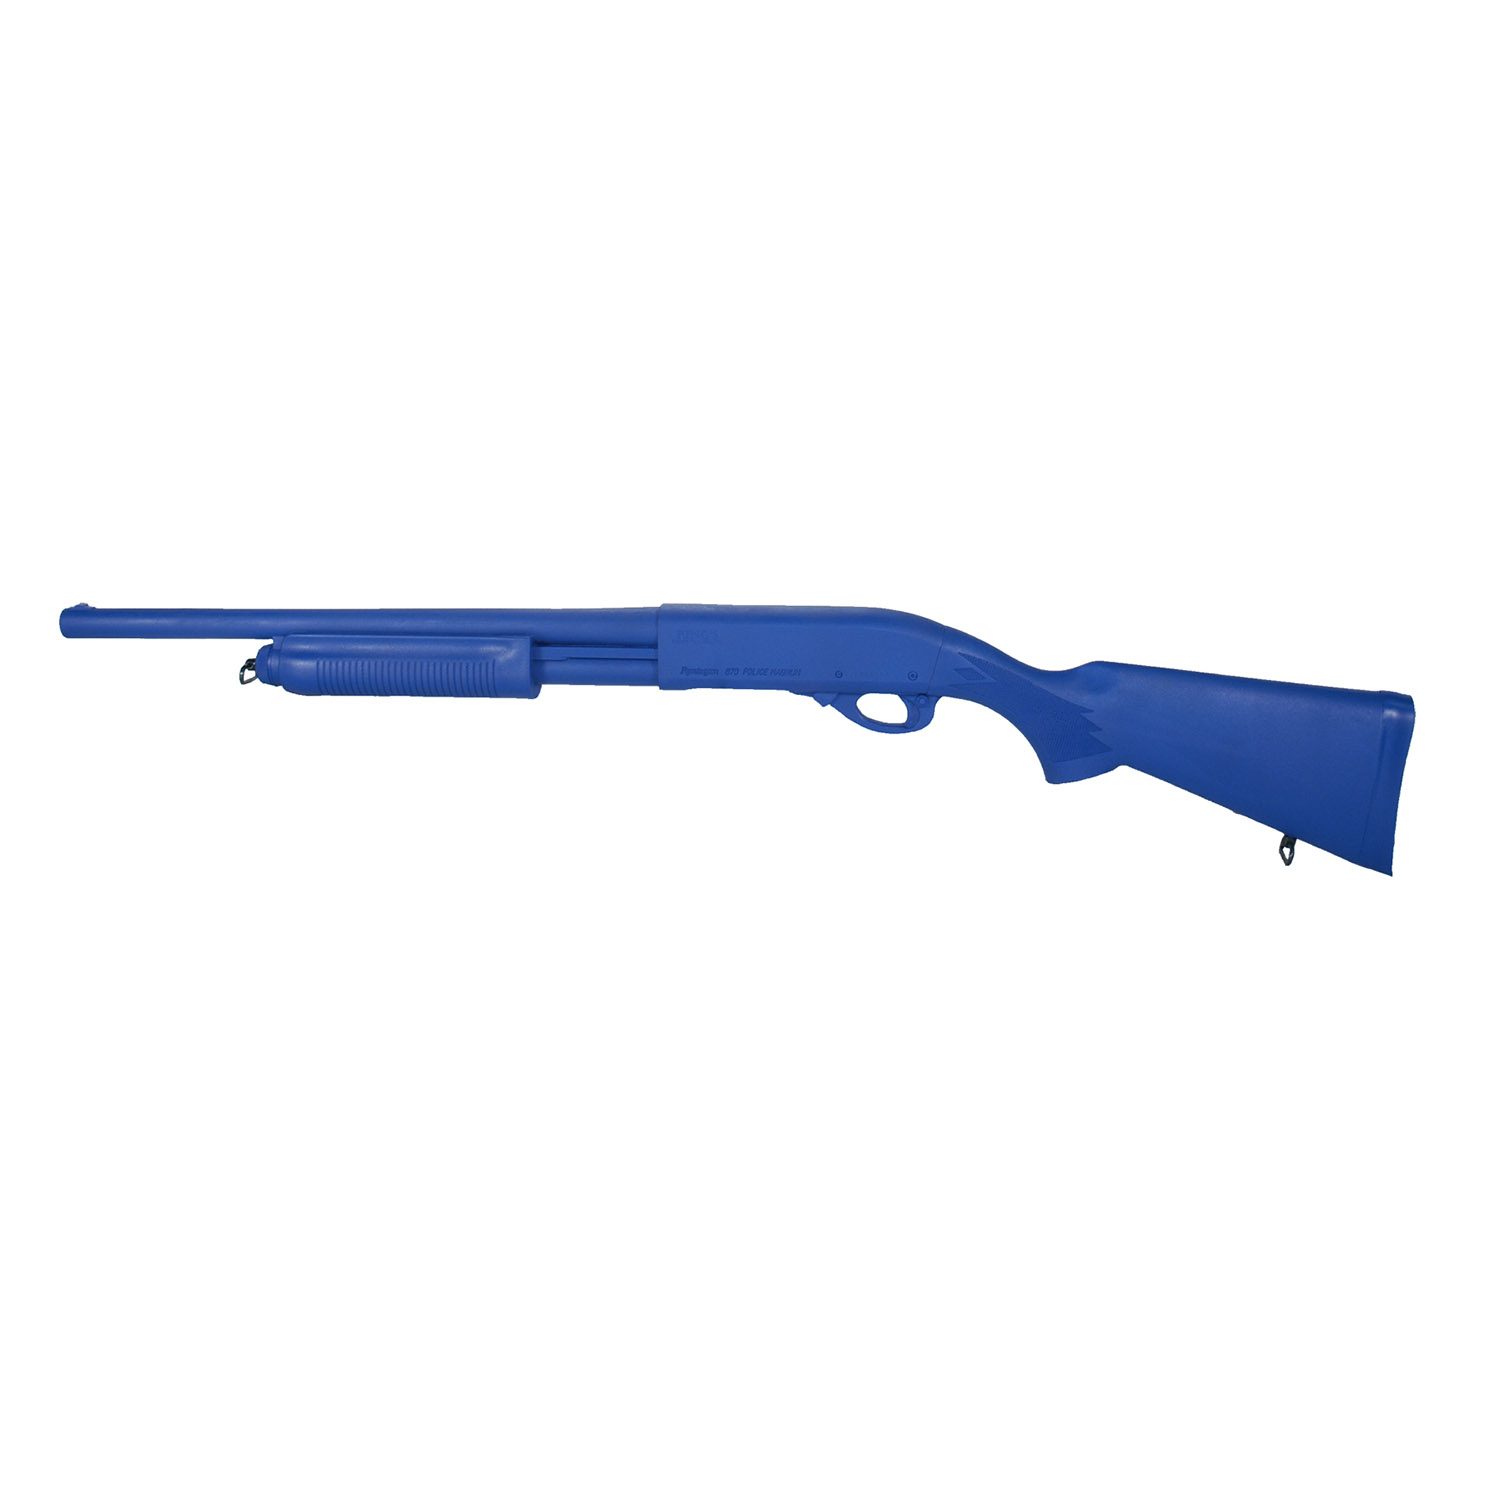 BLUEGUNS Remington 870 Training Gun